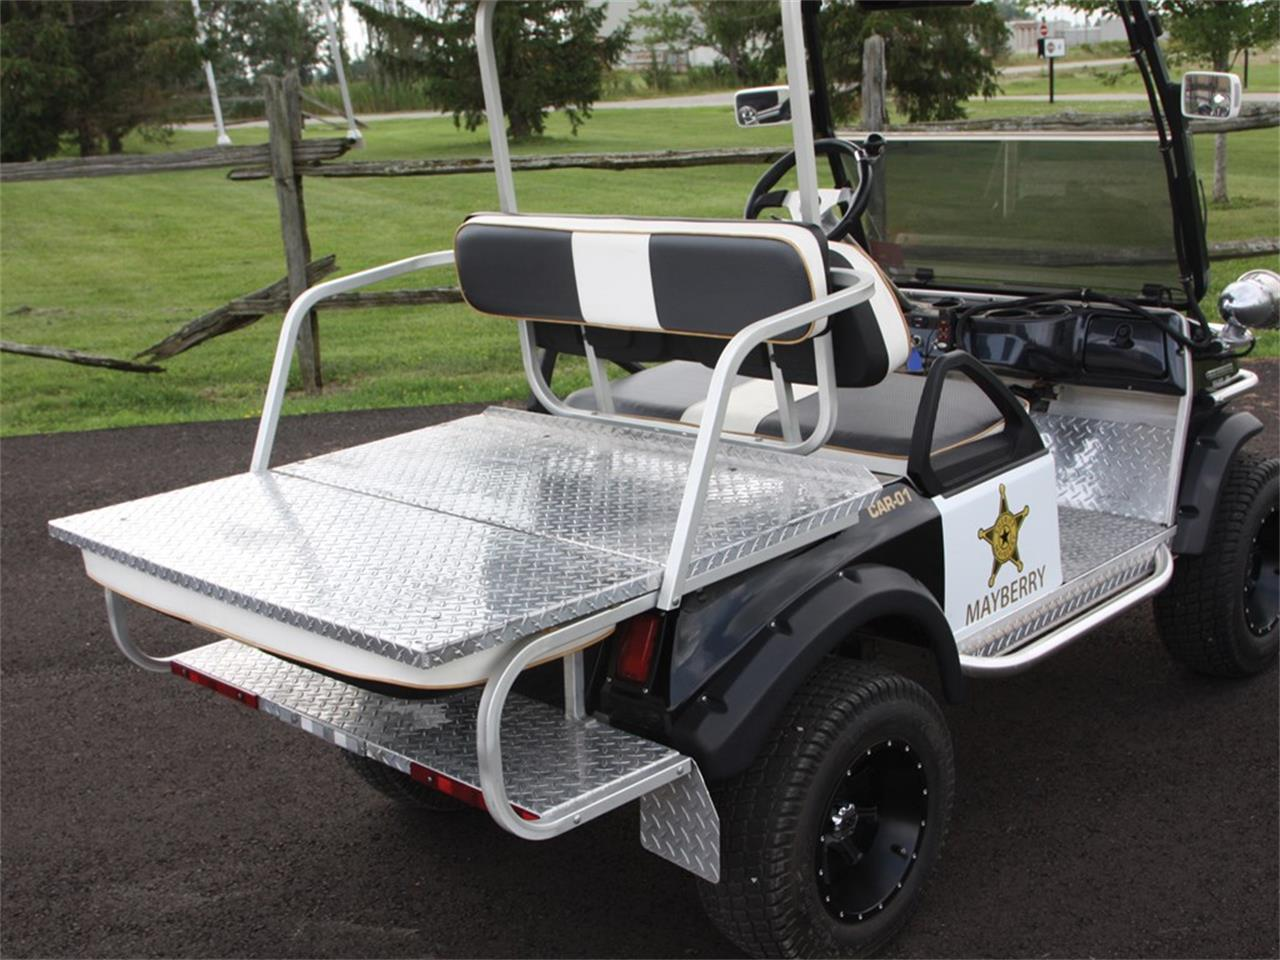 2002 club car mayberry police golf cart for sale cc 1138813. Black Bedroom Furniture Sets. Home Design Ideas